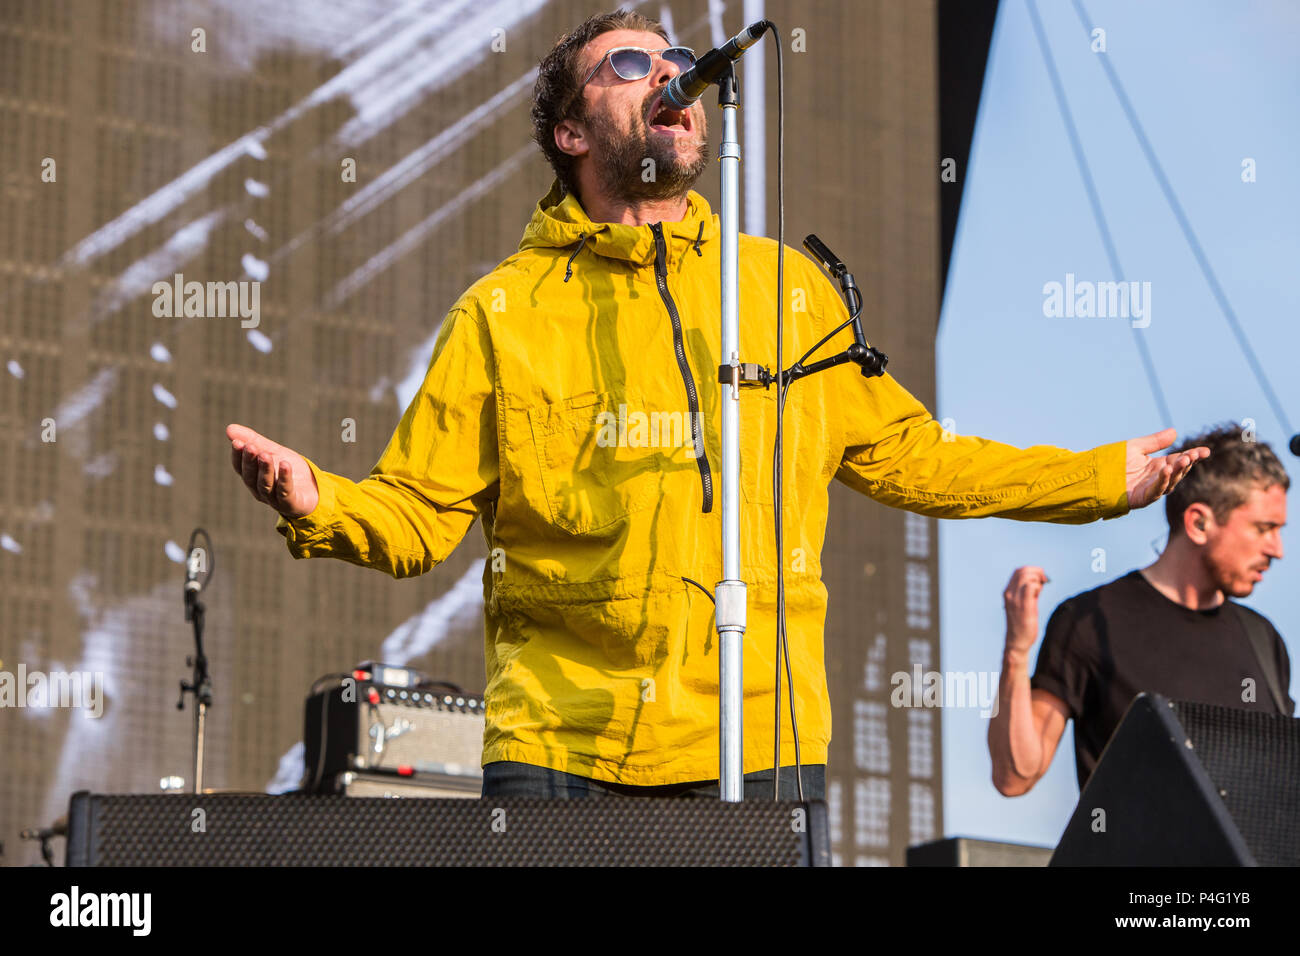 Milan Italy. 21 June 2018. The English singer-songwriter LIAM GALLAGHER performs live on stage at Area Expo Experience Milano during the 'I-Days Festival 2018' Credit: Rodolfo Sassano/Alamy Live News - Stock Image